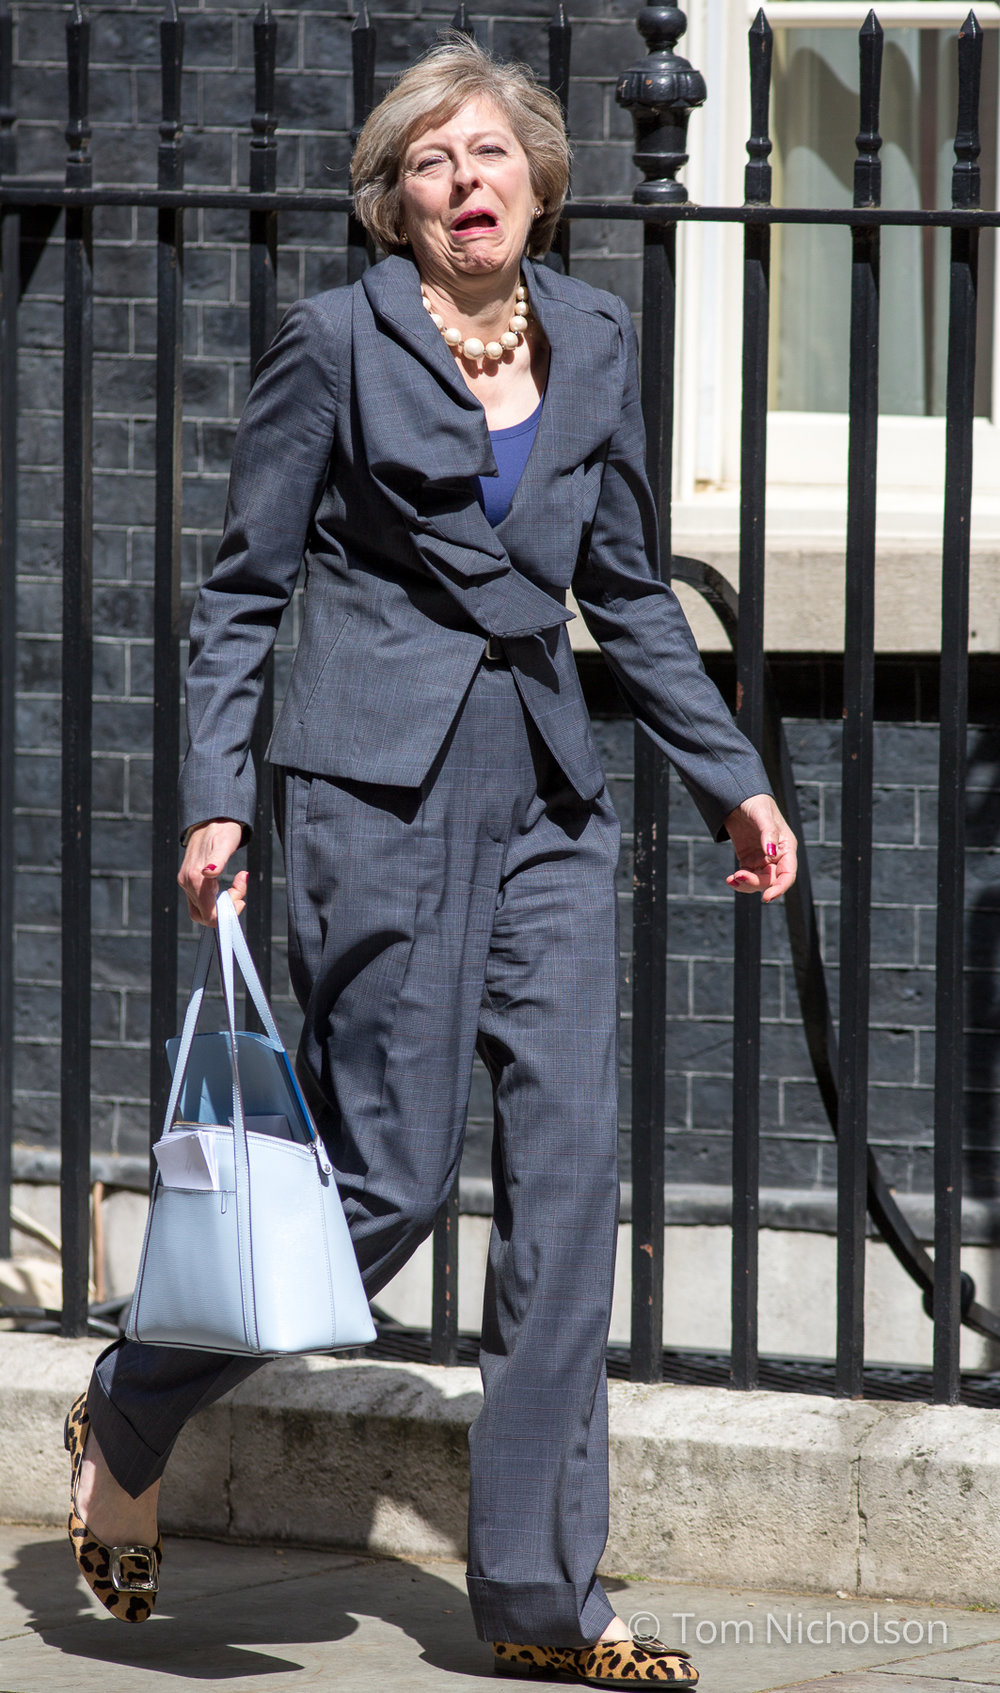 12/07/2016. London, UK. British Prime Minister in waiting and new leader of the Conservative Party Theresa May pulls a face after turning the wrong way out of 10 Downing Street.